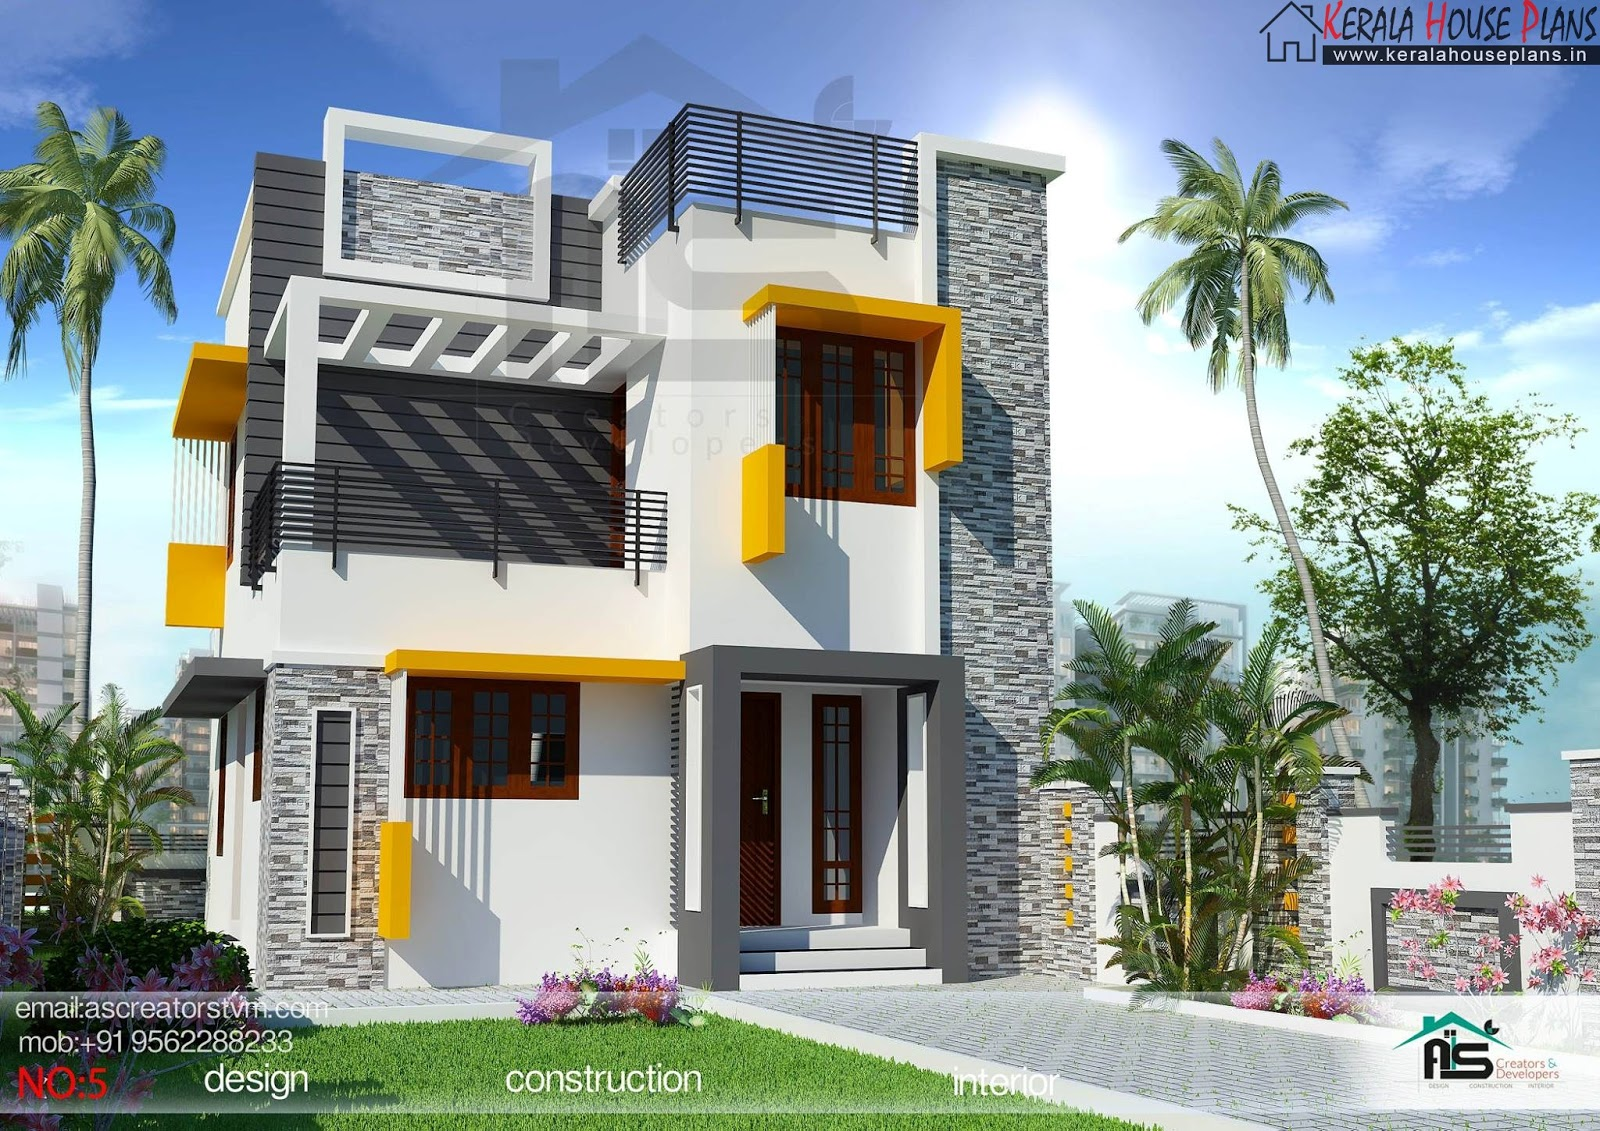 Three bedroom house plan kerala style kerala house plans for Three bedroom house plans kerala style